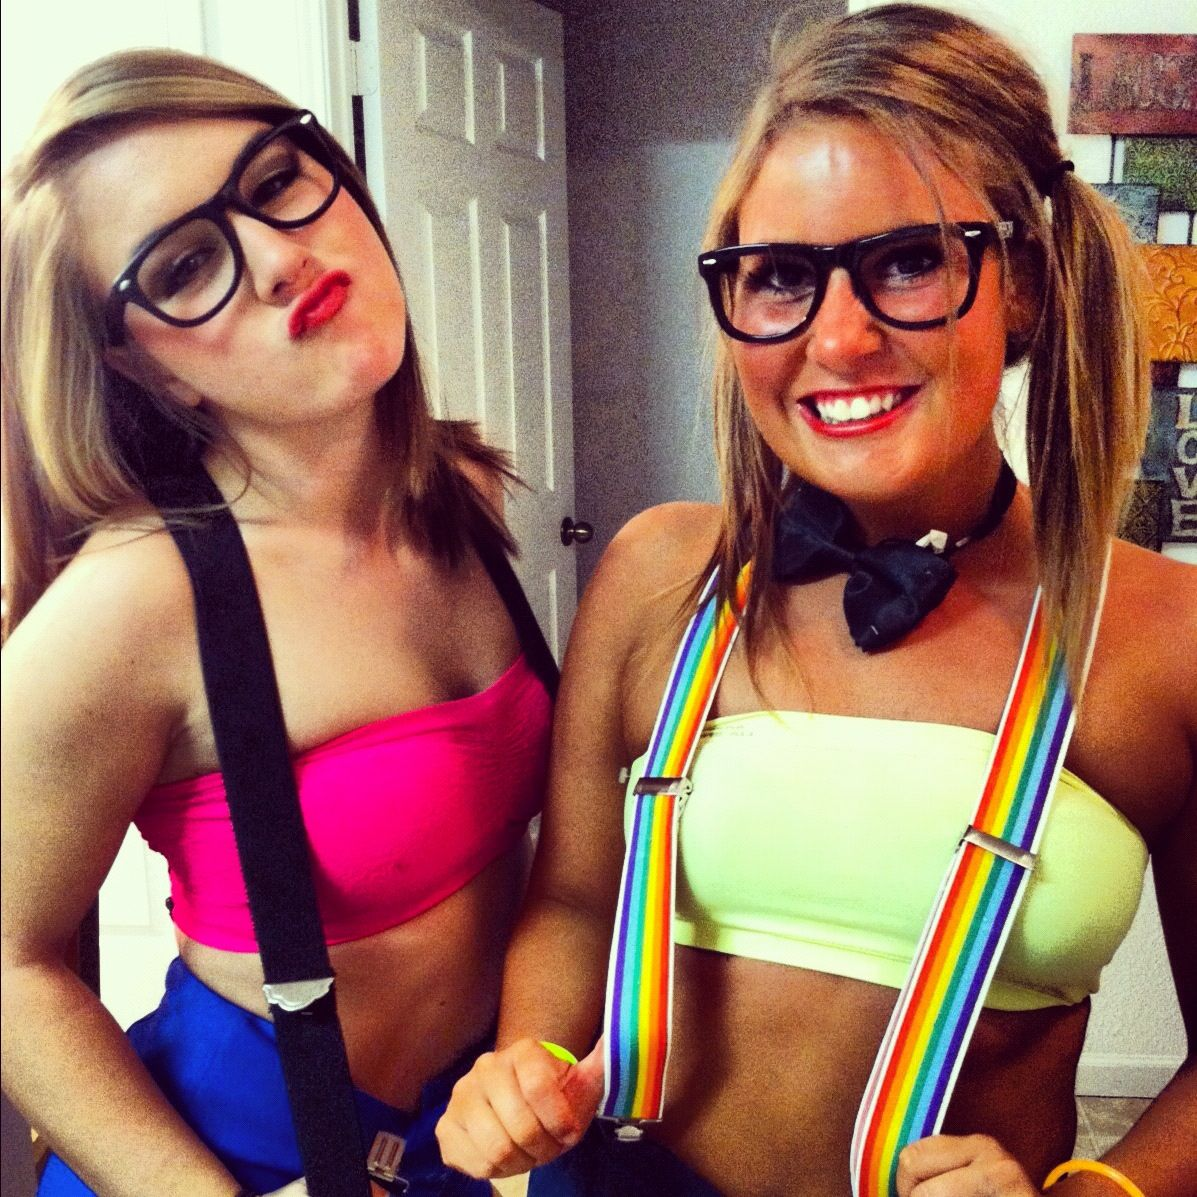 dyi halloween costume nerd - Homemade Halloween Costumes College Girls